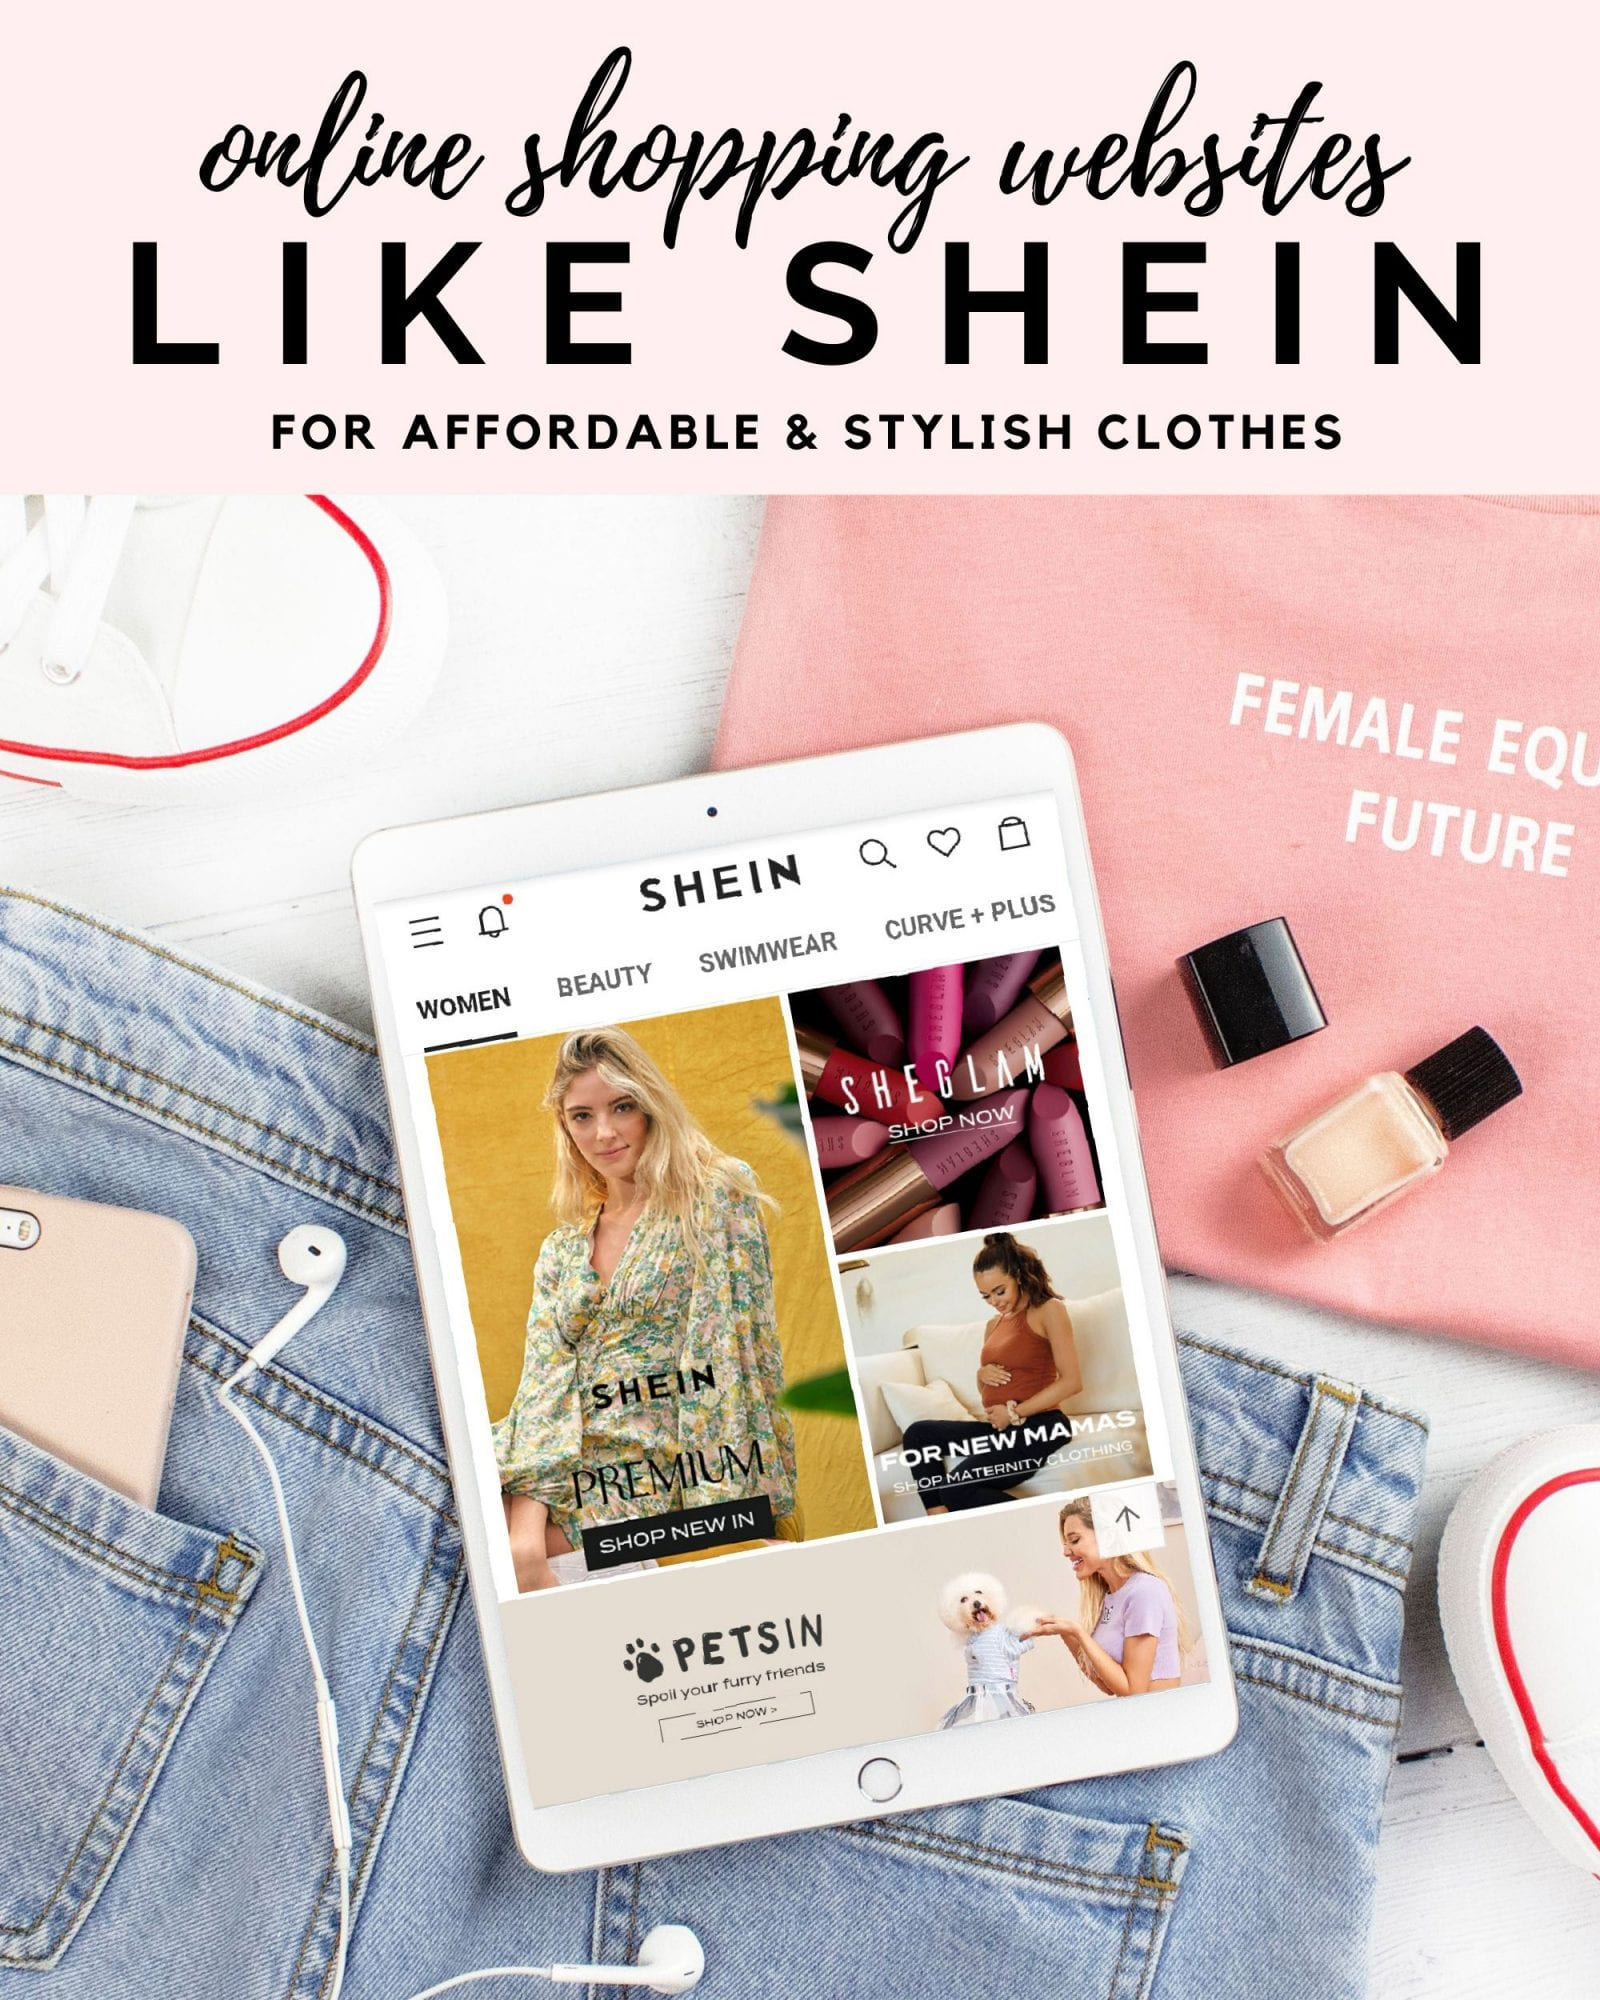 Clothing websites like SHEIN for budget-friendly stylish clothes online